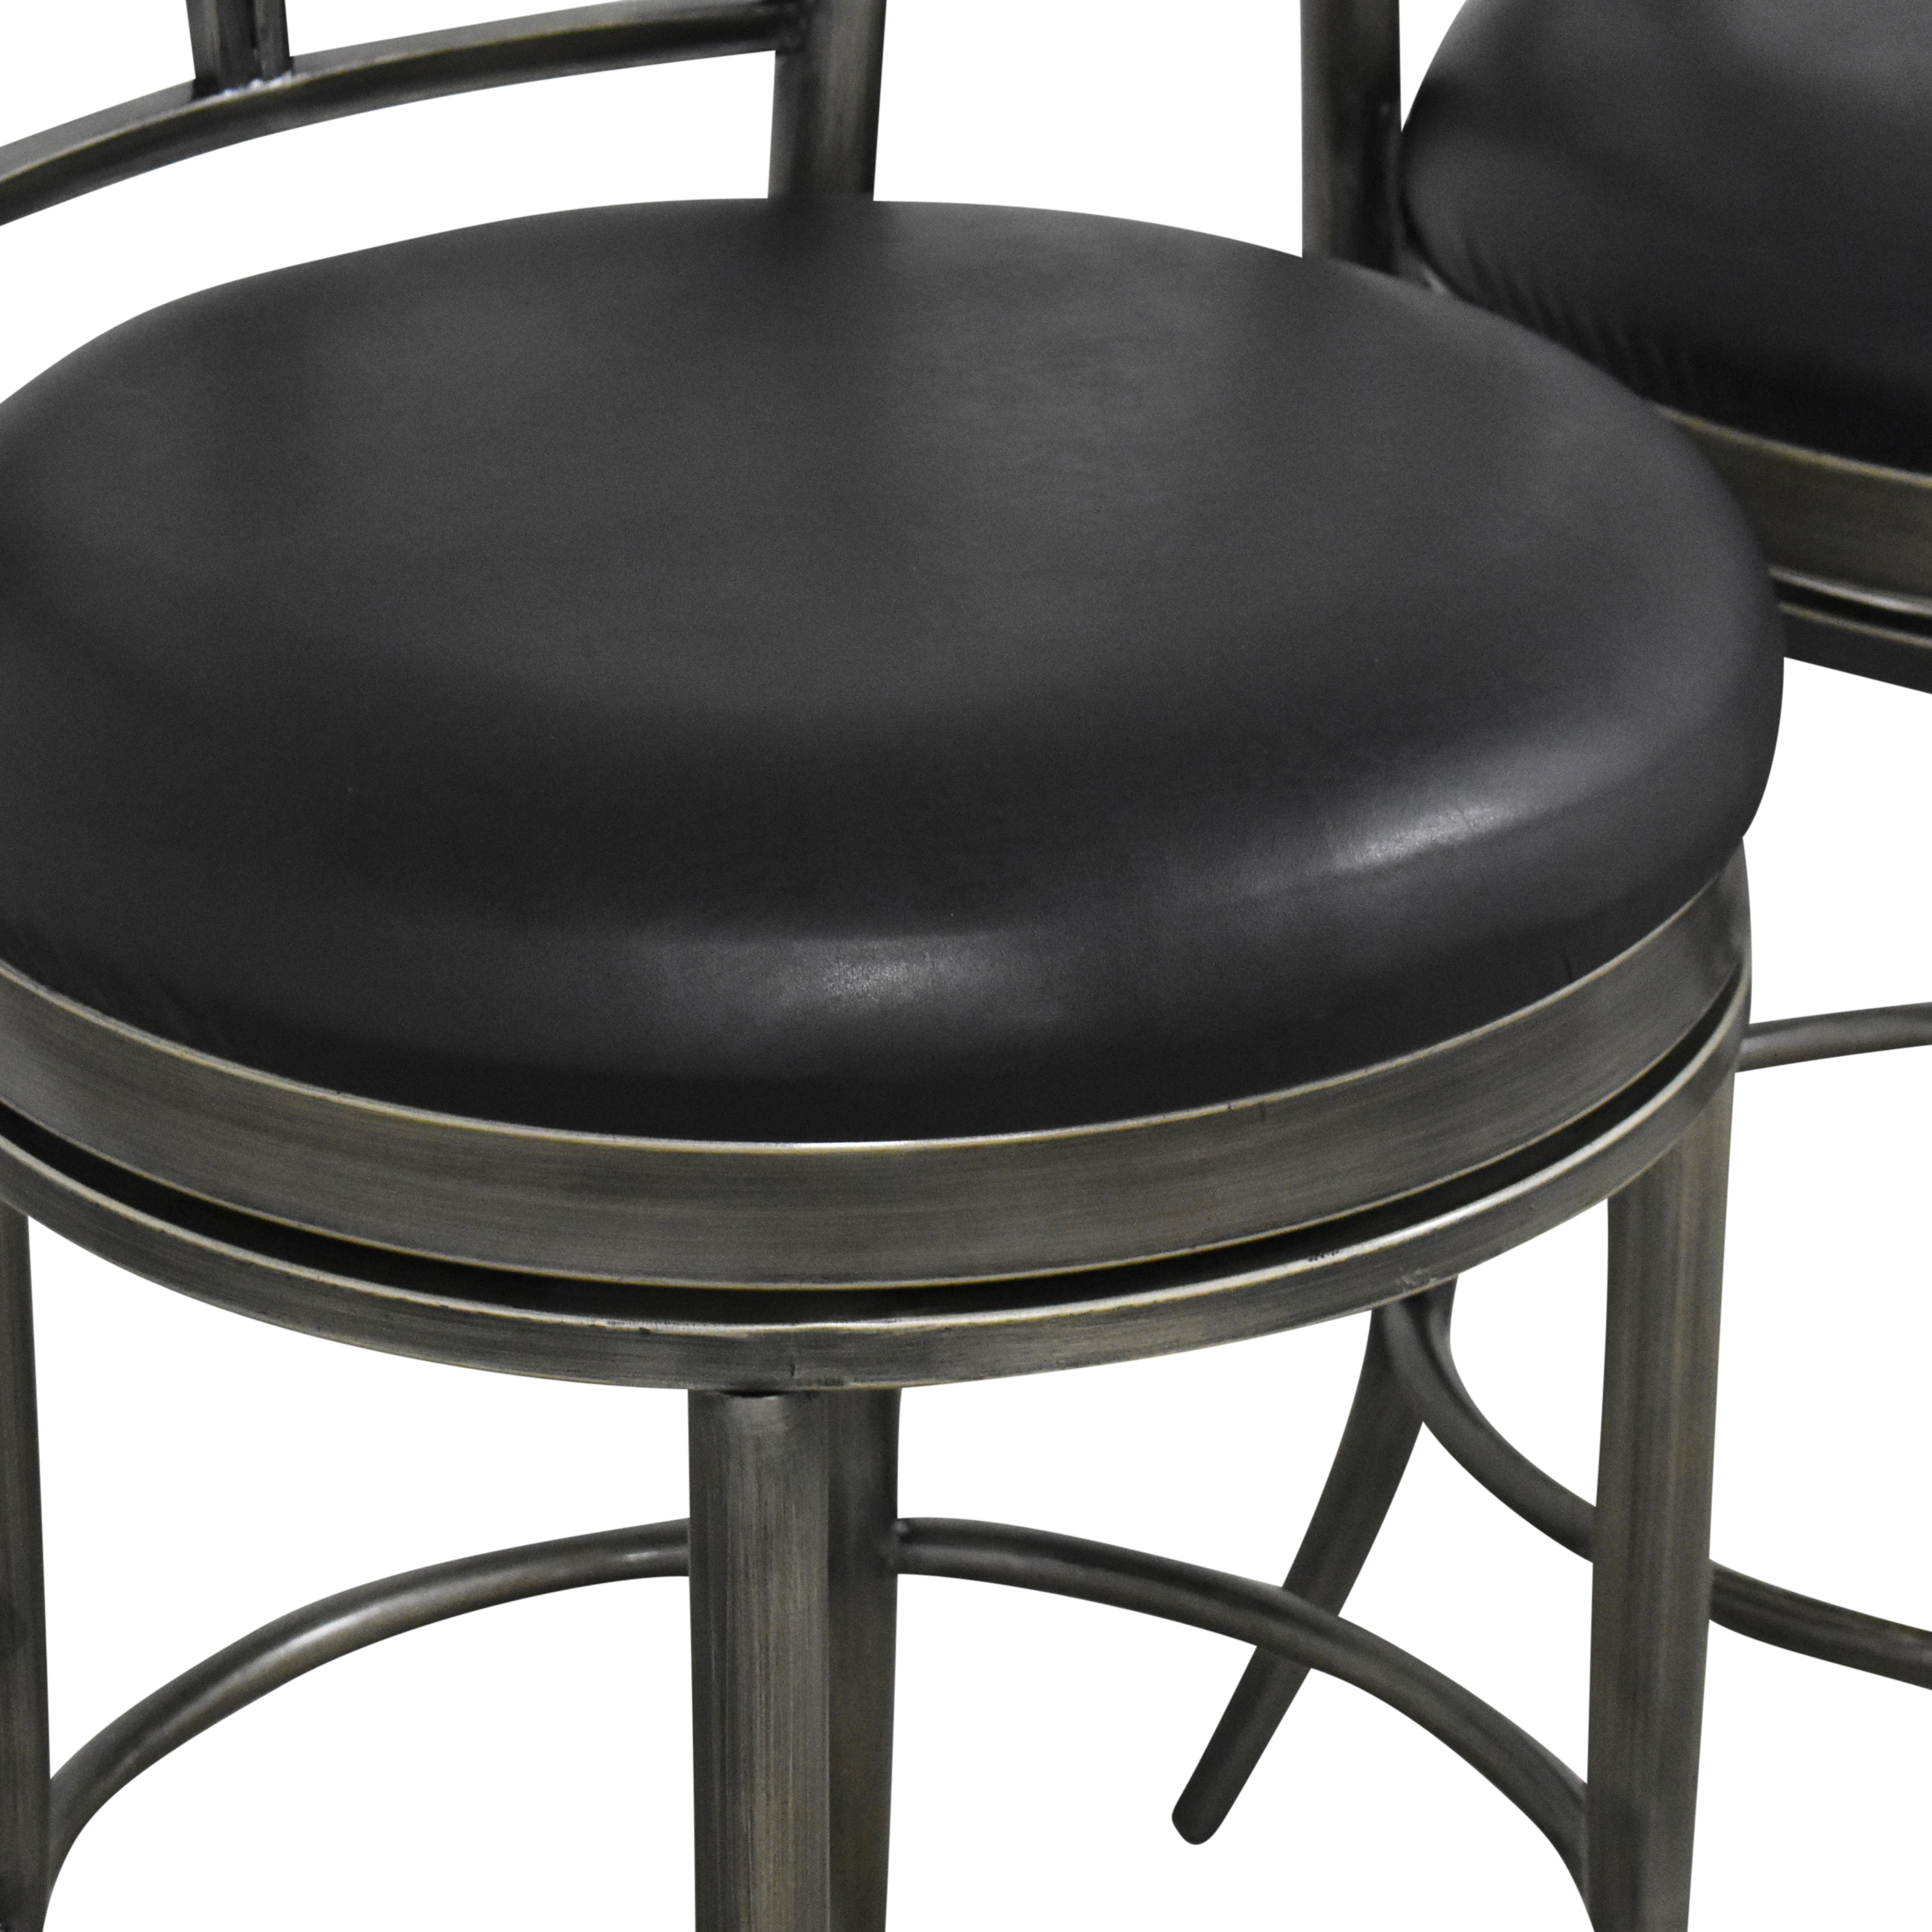 Hillsdale Furniture Hillsdale Furniture Swivel Bar Stools nyc